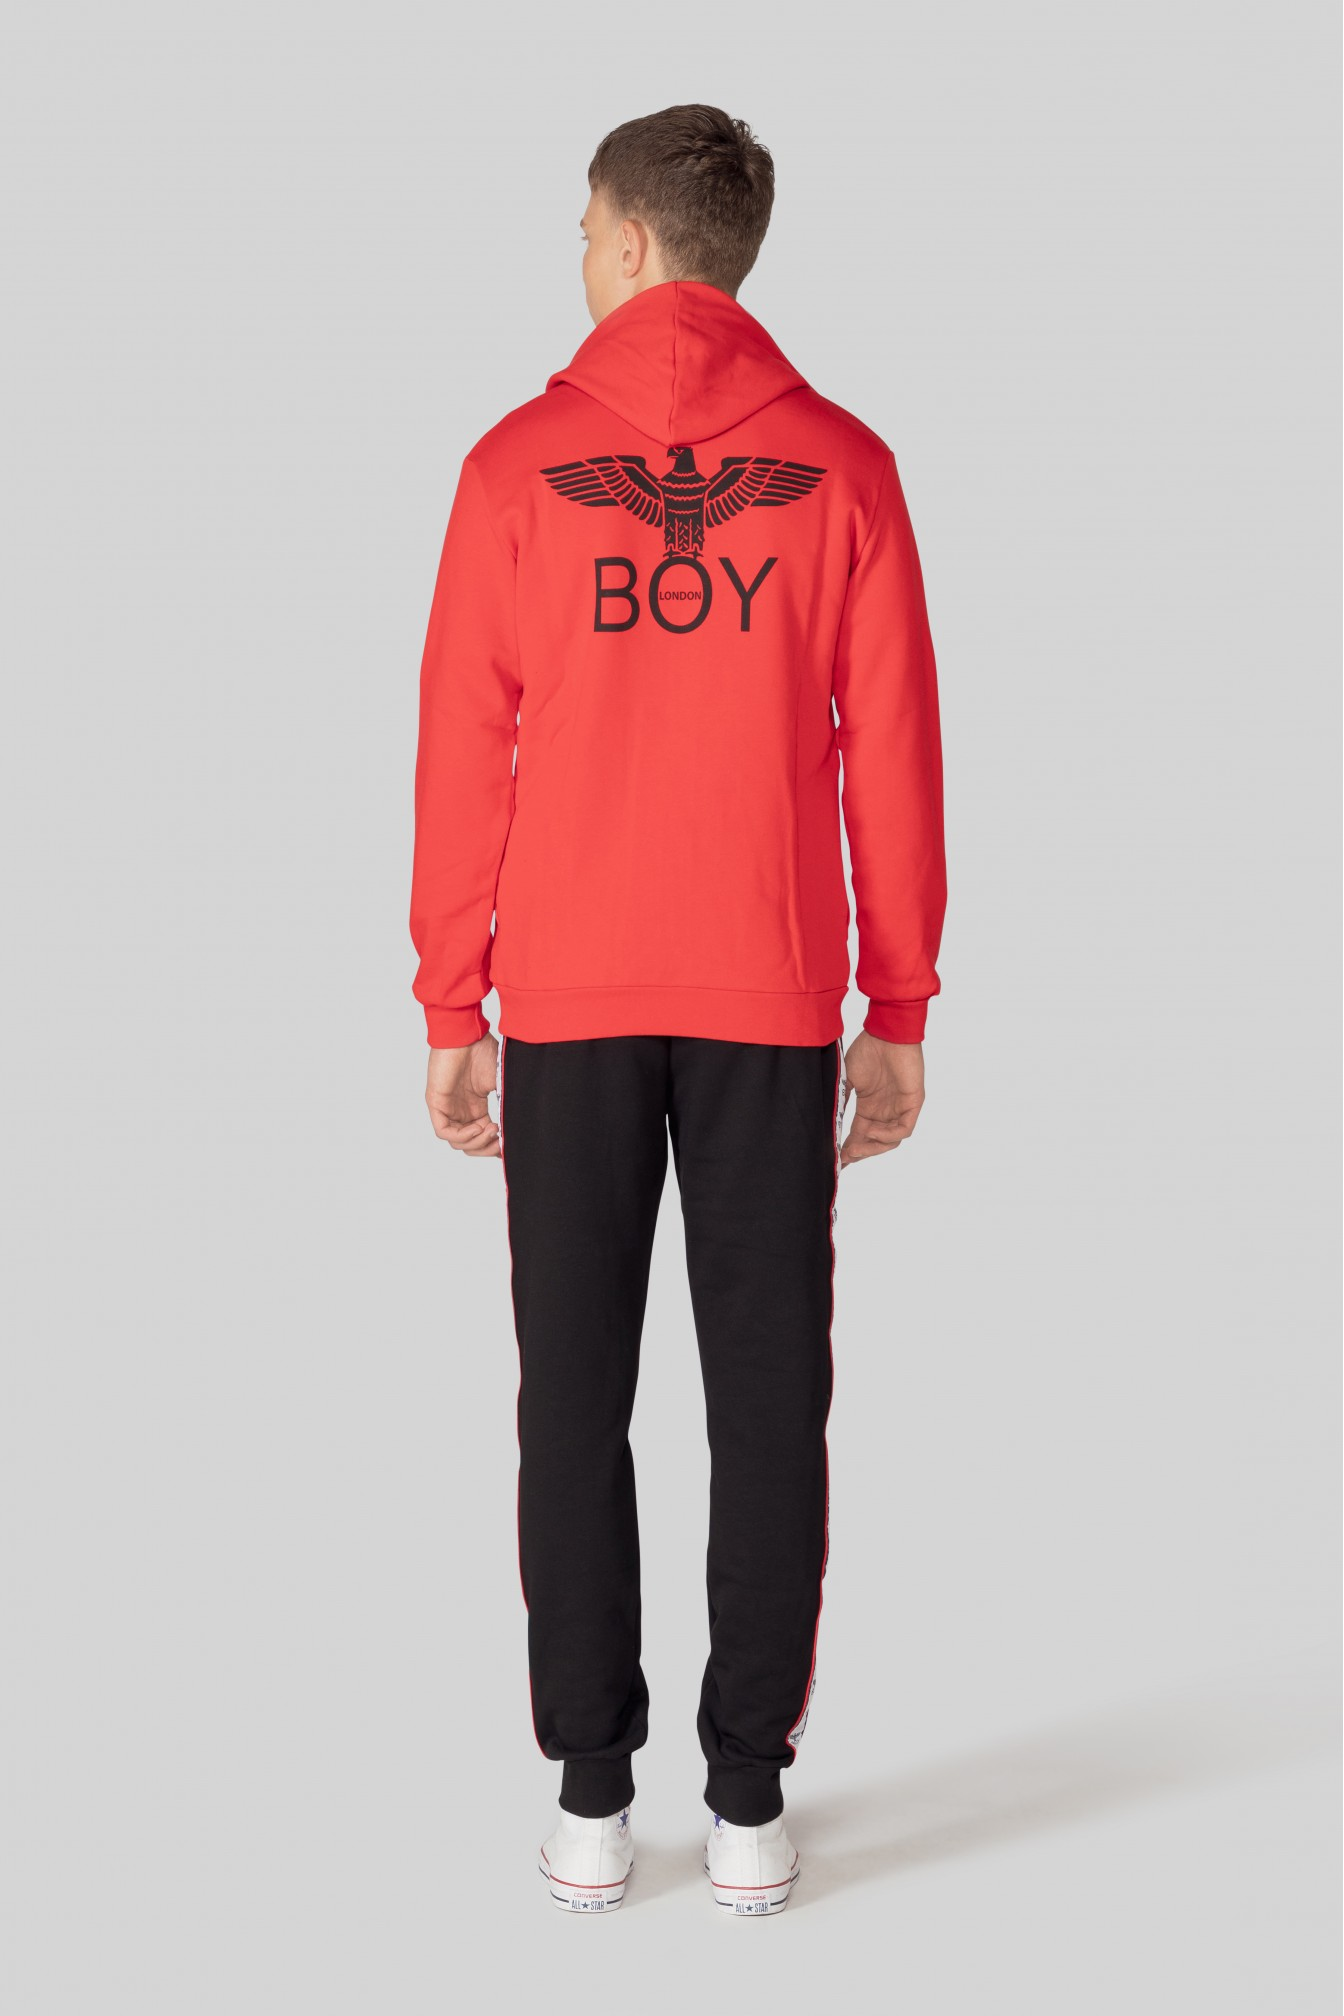 FELPA - BLU6702 - BOY LONDON